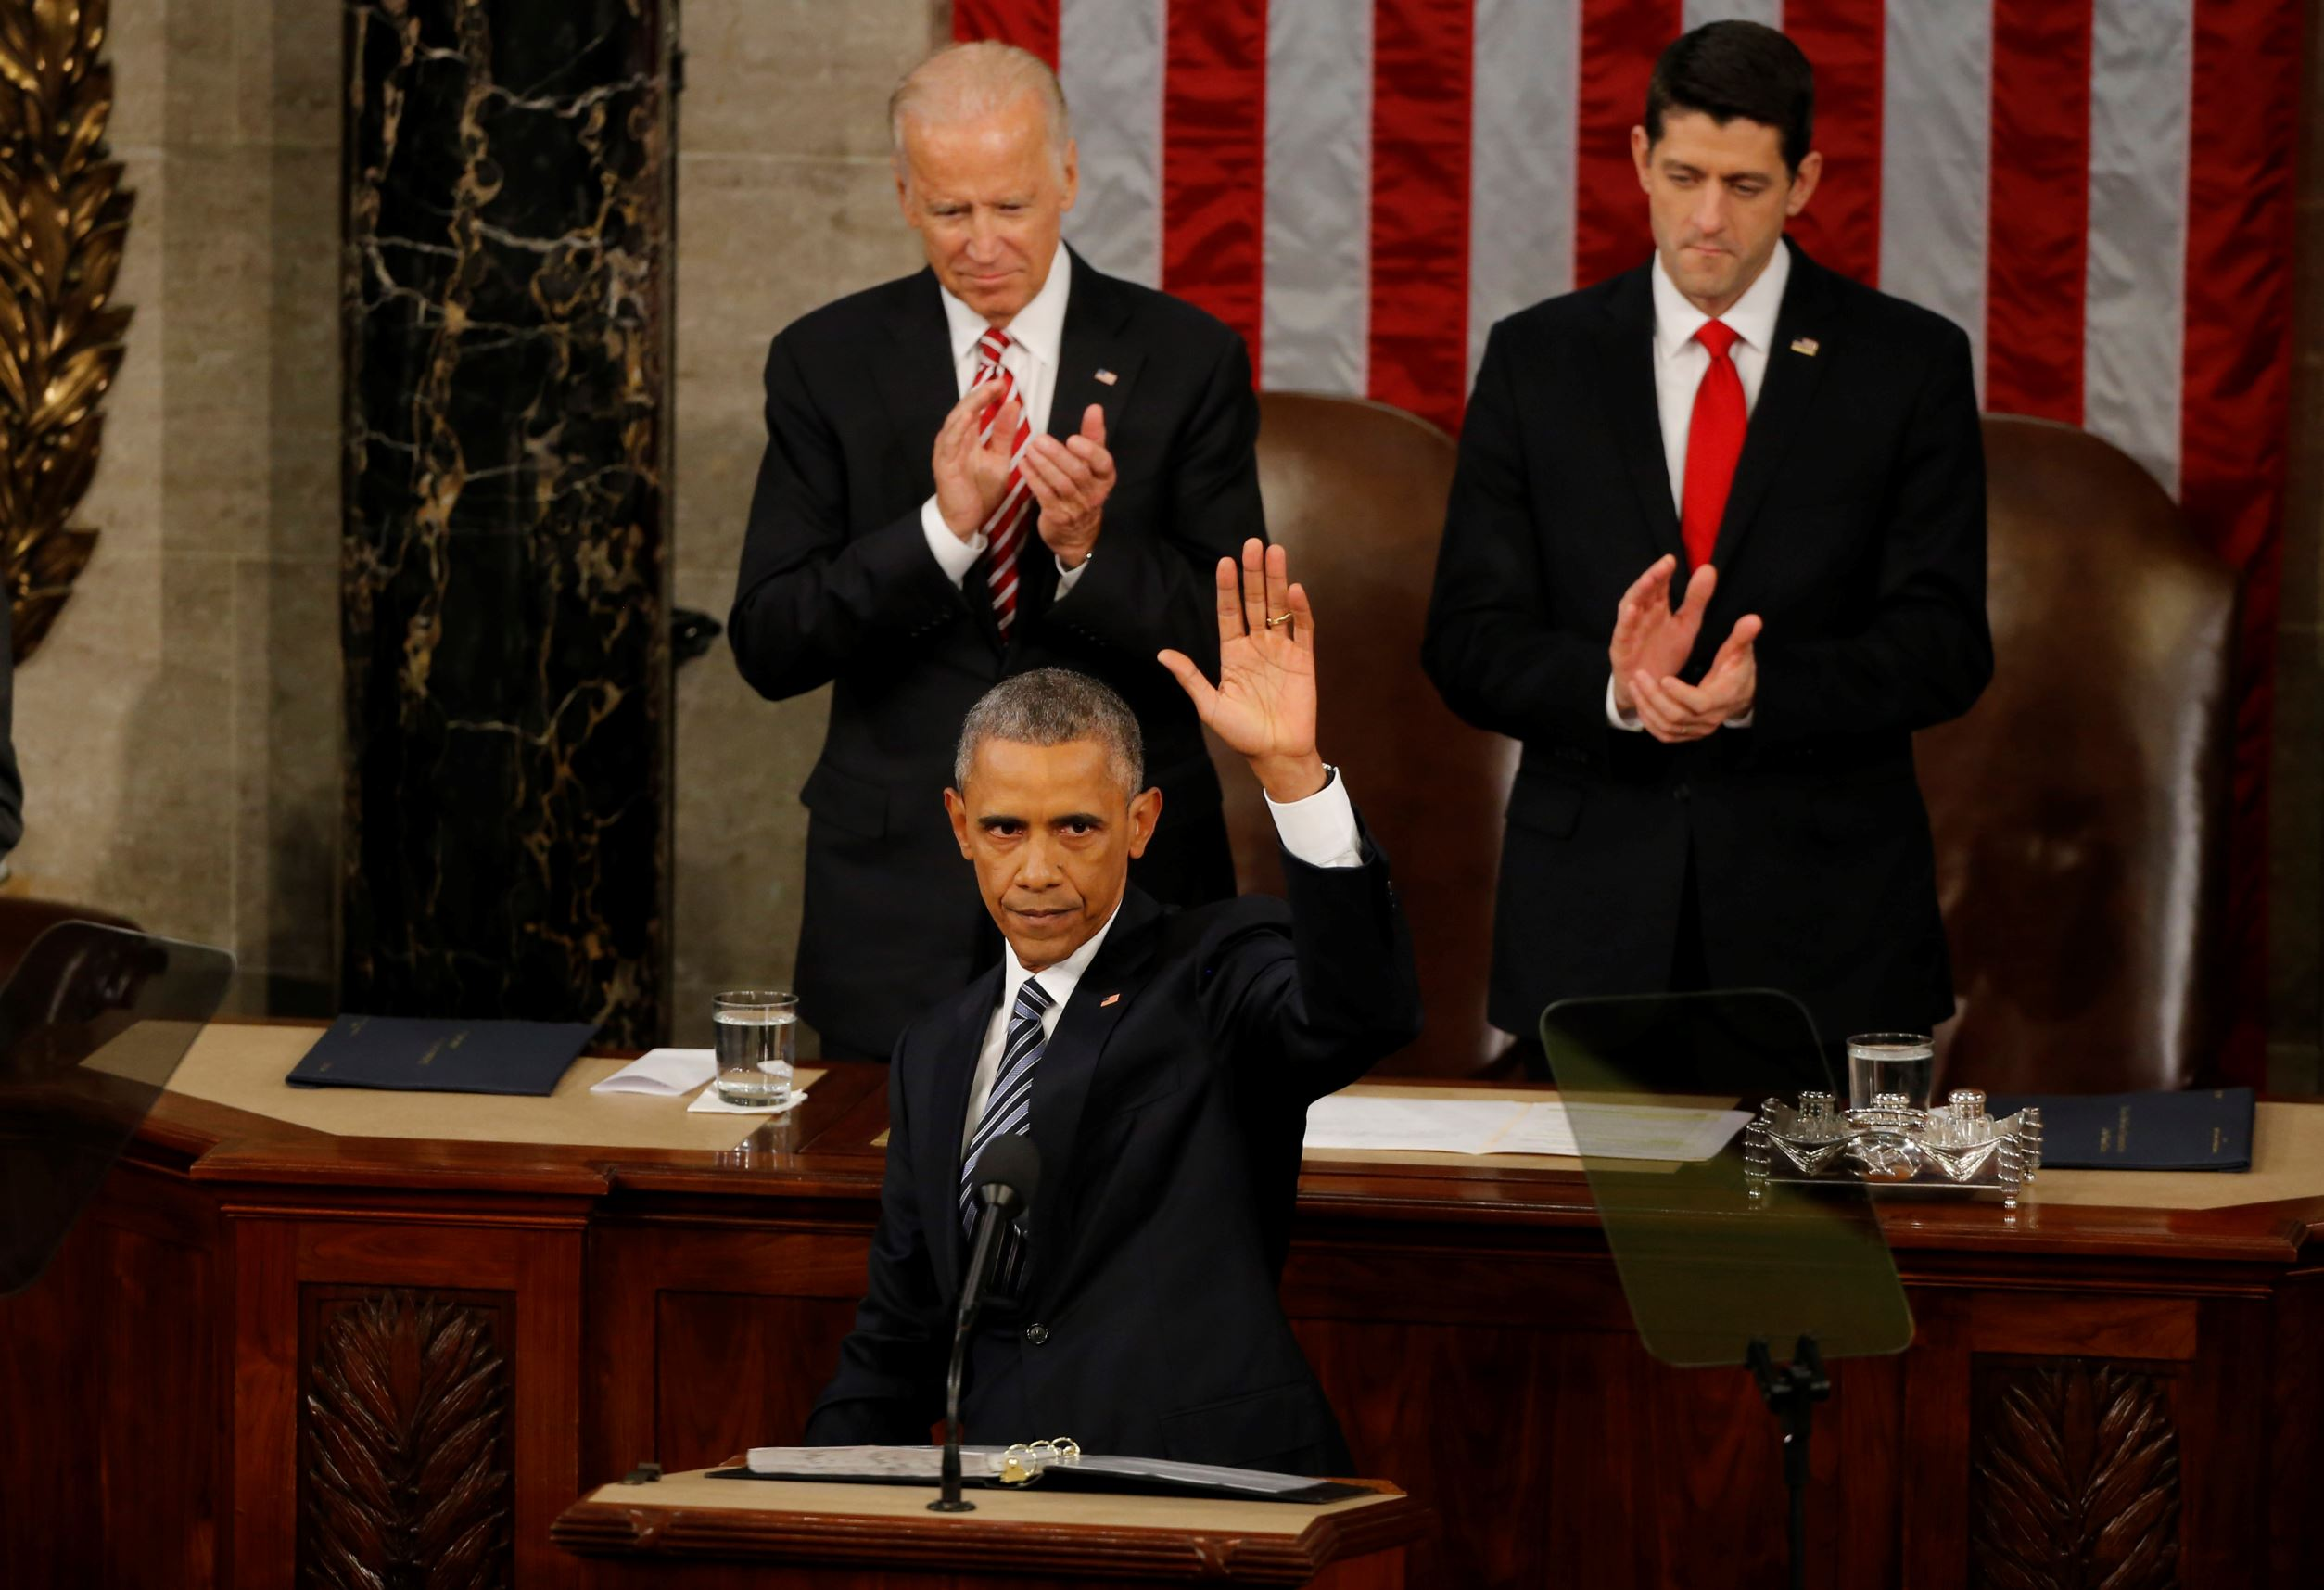 U.S. Vice President Joe Biden (L, rear) and Speaker of the House Paul Ryan (R, rear) applaud as U.S. President Barack Obama waves at the conclusion of his State of the Union address to a joint session of Congress in Washington, January 12, 2016.